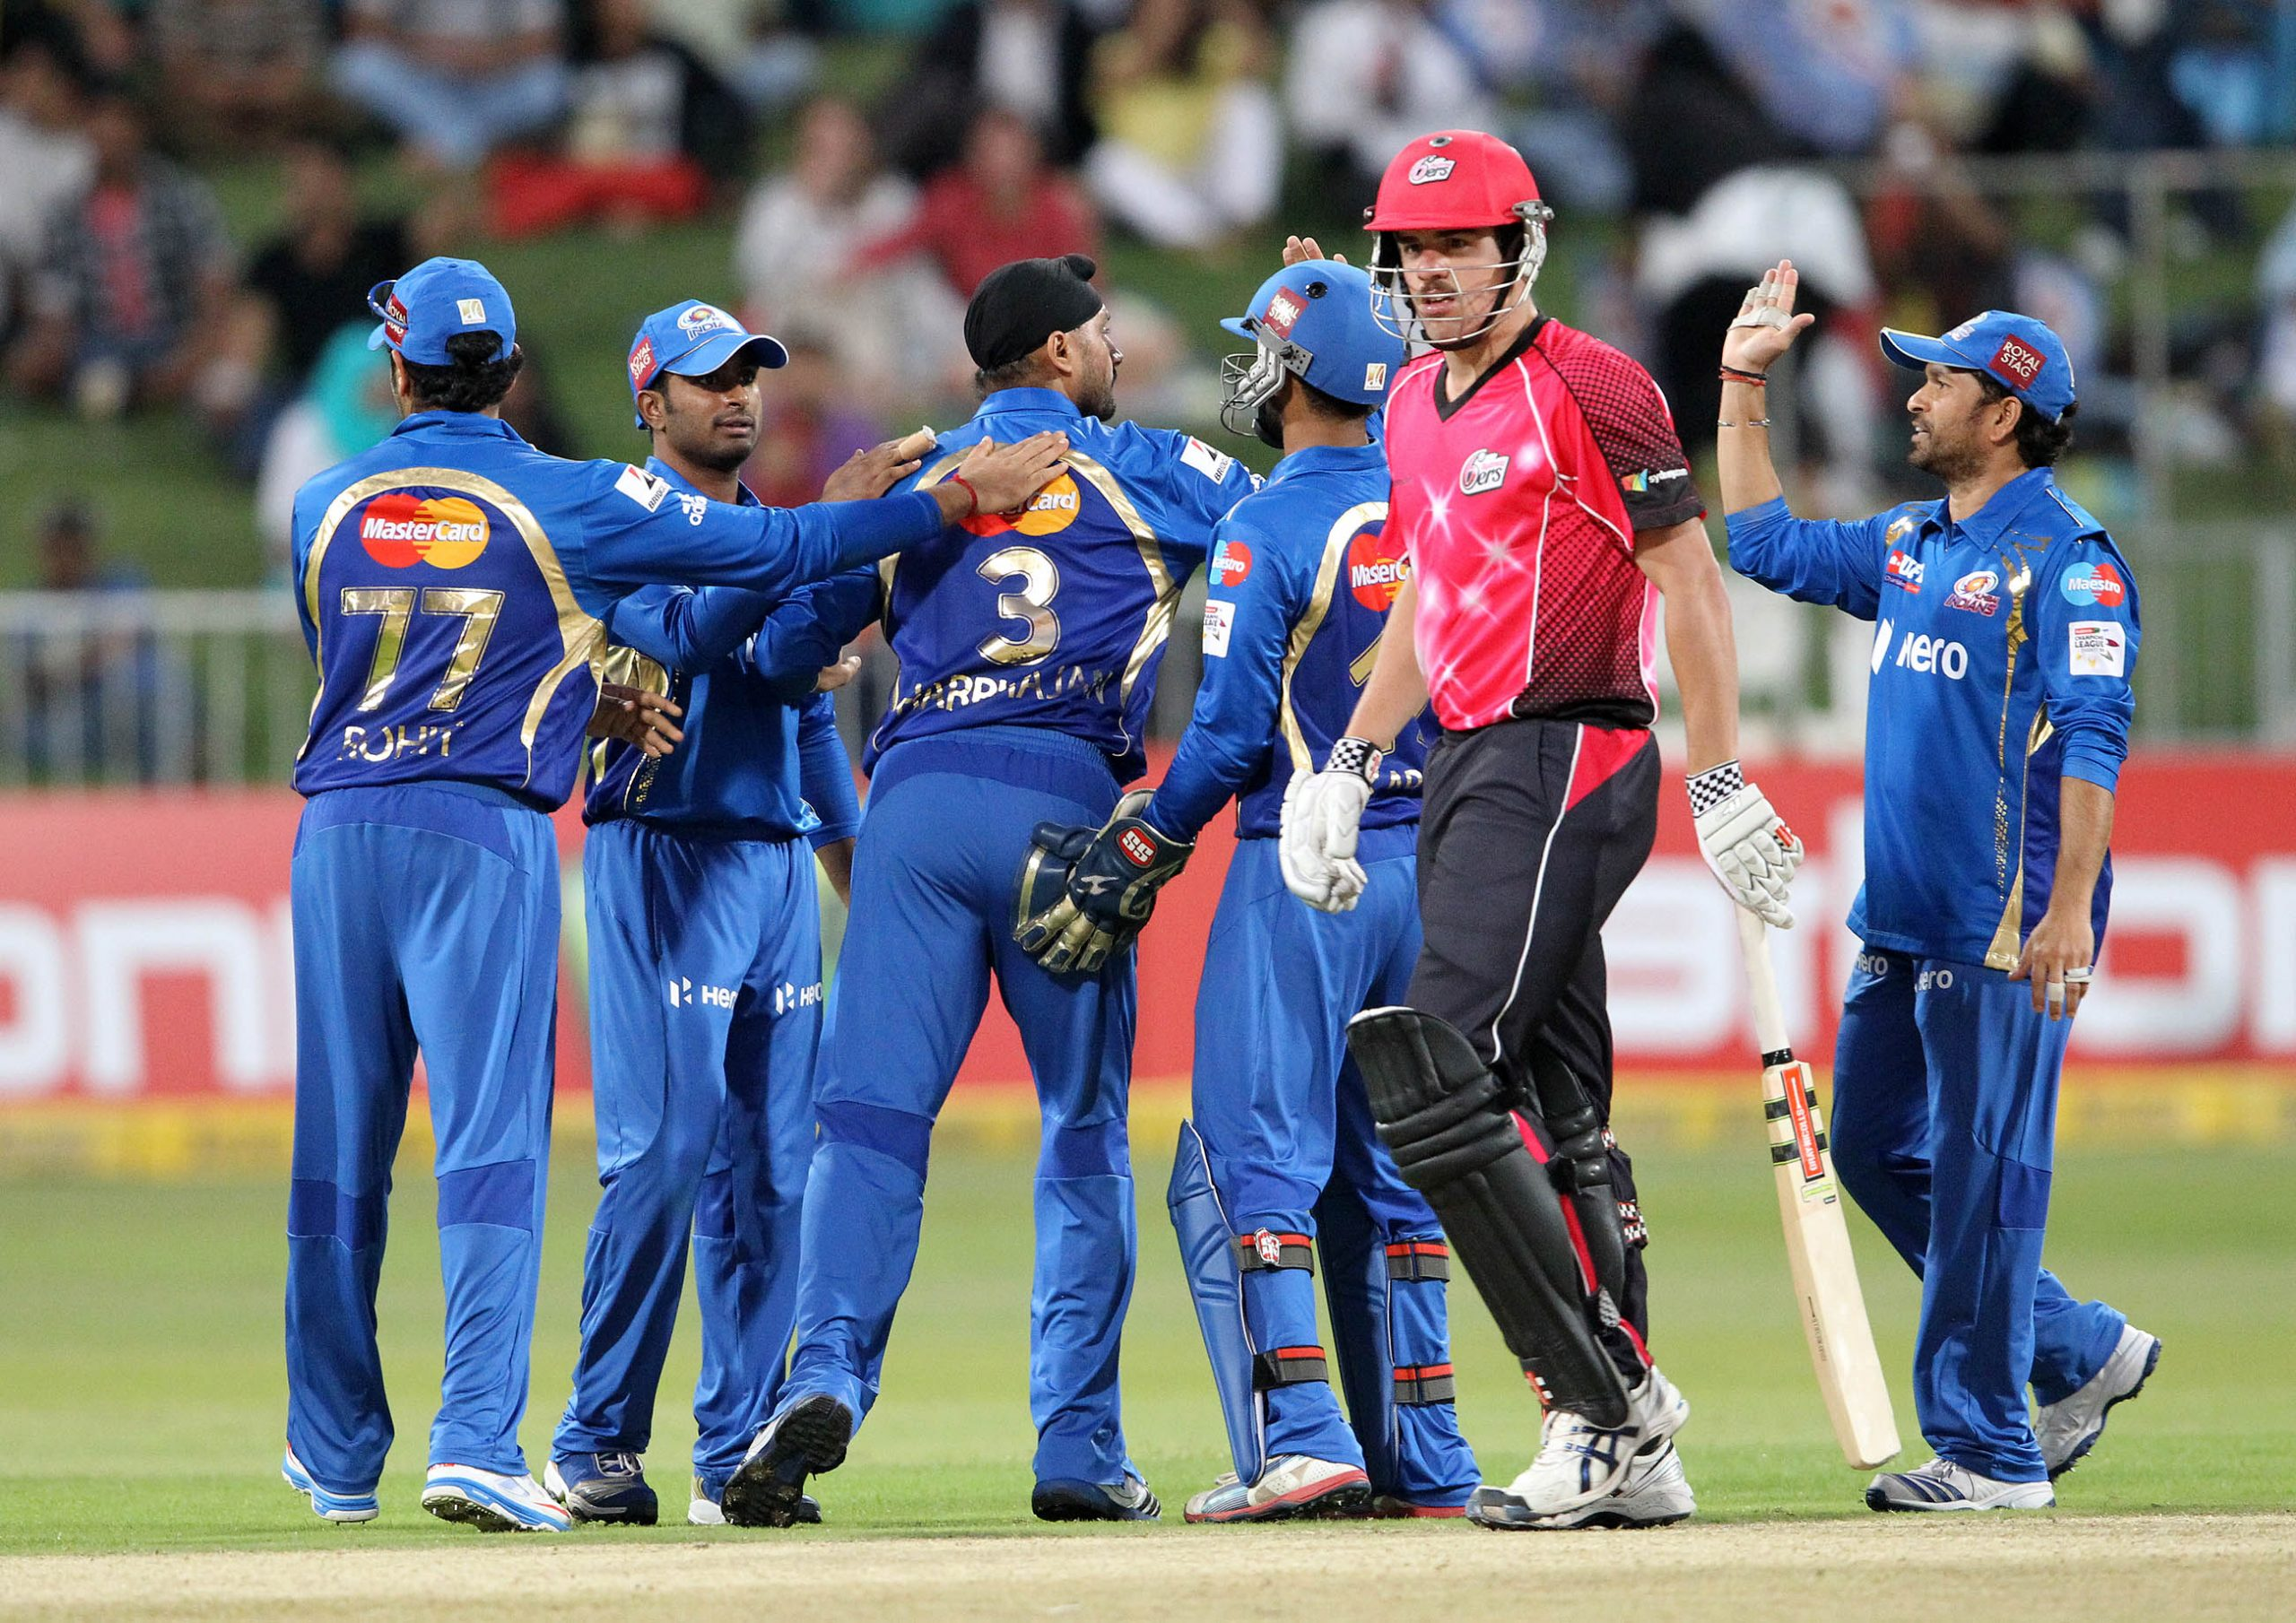 Moise Henriques of the Sydney Sixers walks off as the Mumbai Indians celebrate his wicket on October 22, 2012 during a Champions League T20 (CLT20) match Sydney Sixers vs Mumbai Indians at Sahara Stadium Kingsmead in Durban. AFP PHOTO / STR        (Photo credit should read -/AFP via Getty Images)